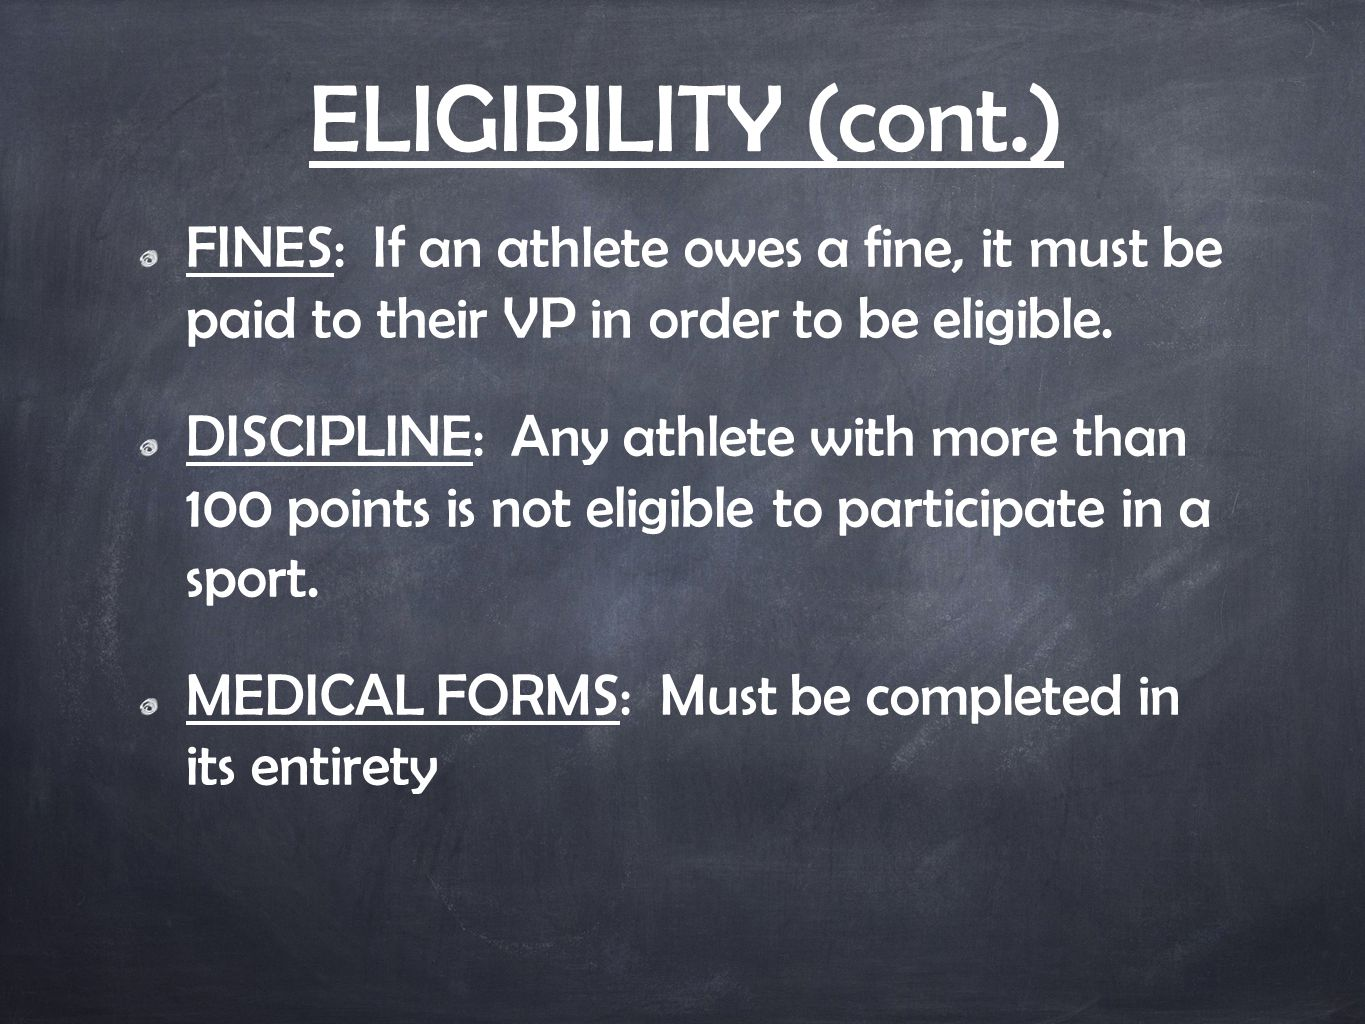 ELIGIBILITY (cont.) FINES: If an athlete owes a fine, it must be paid to their VP in order to be eligible.